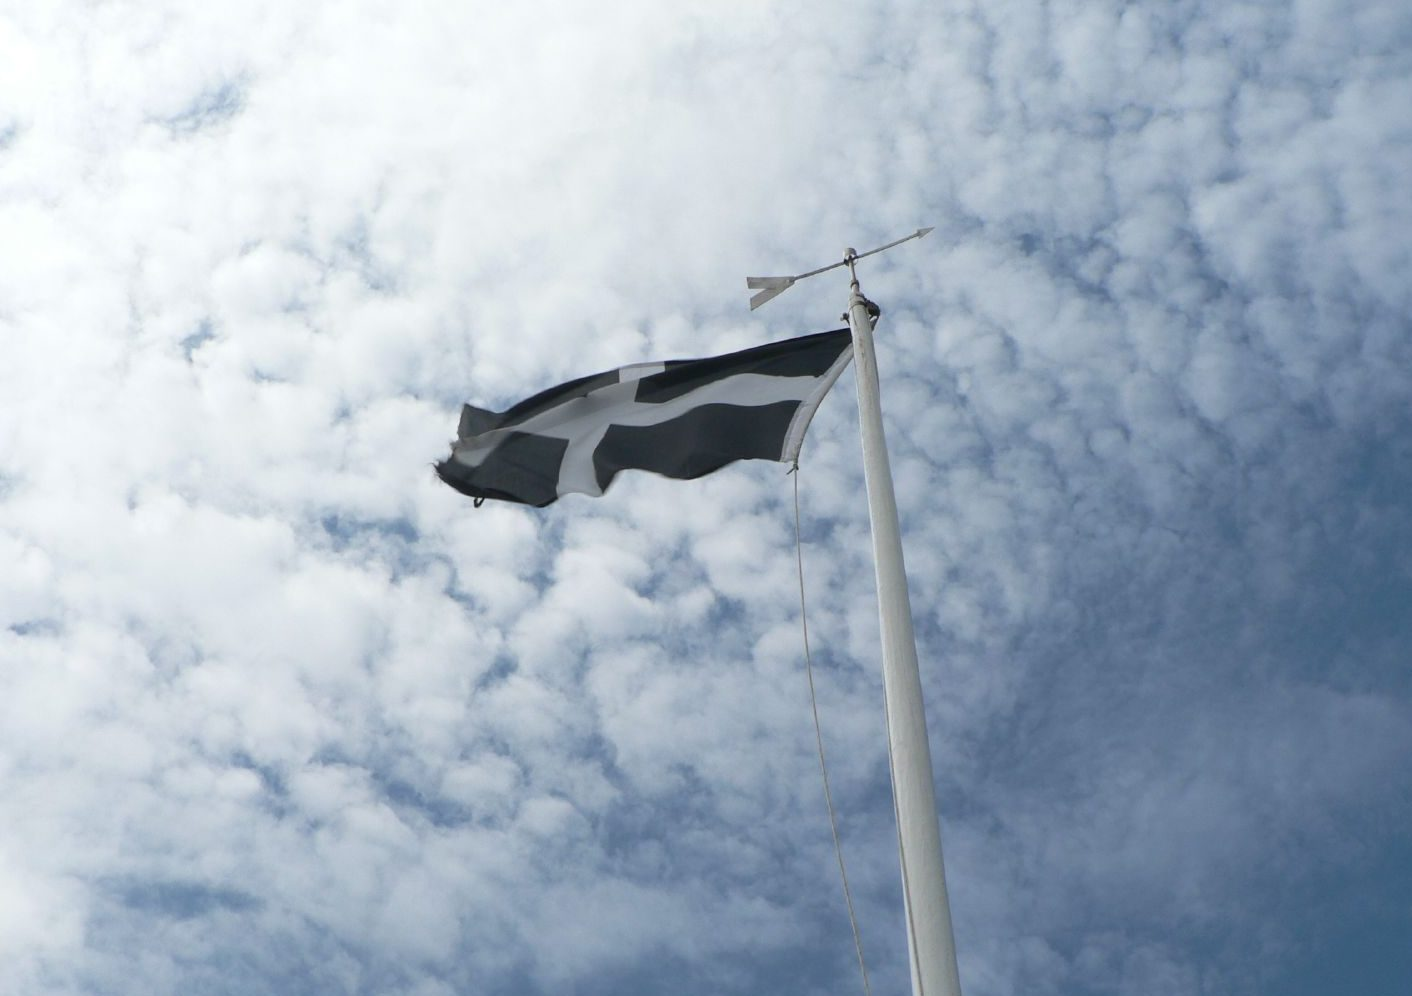 A picture of the cornish flag flying against the blue sky.